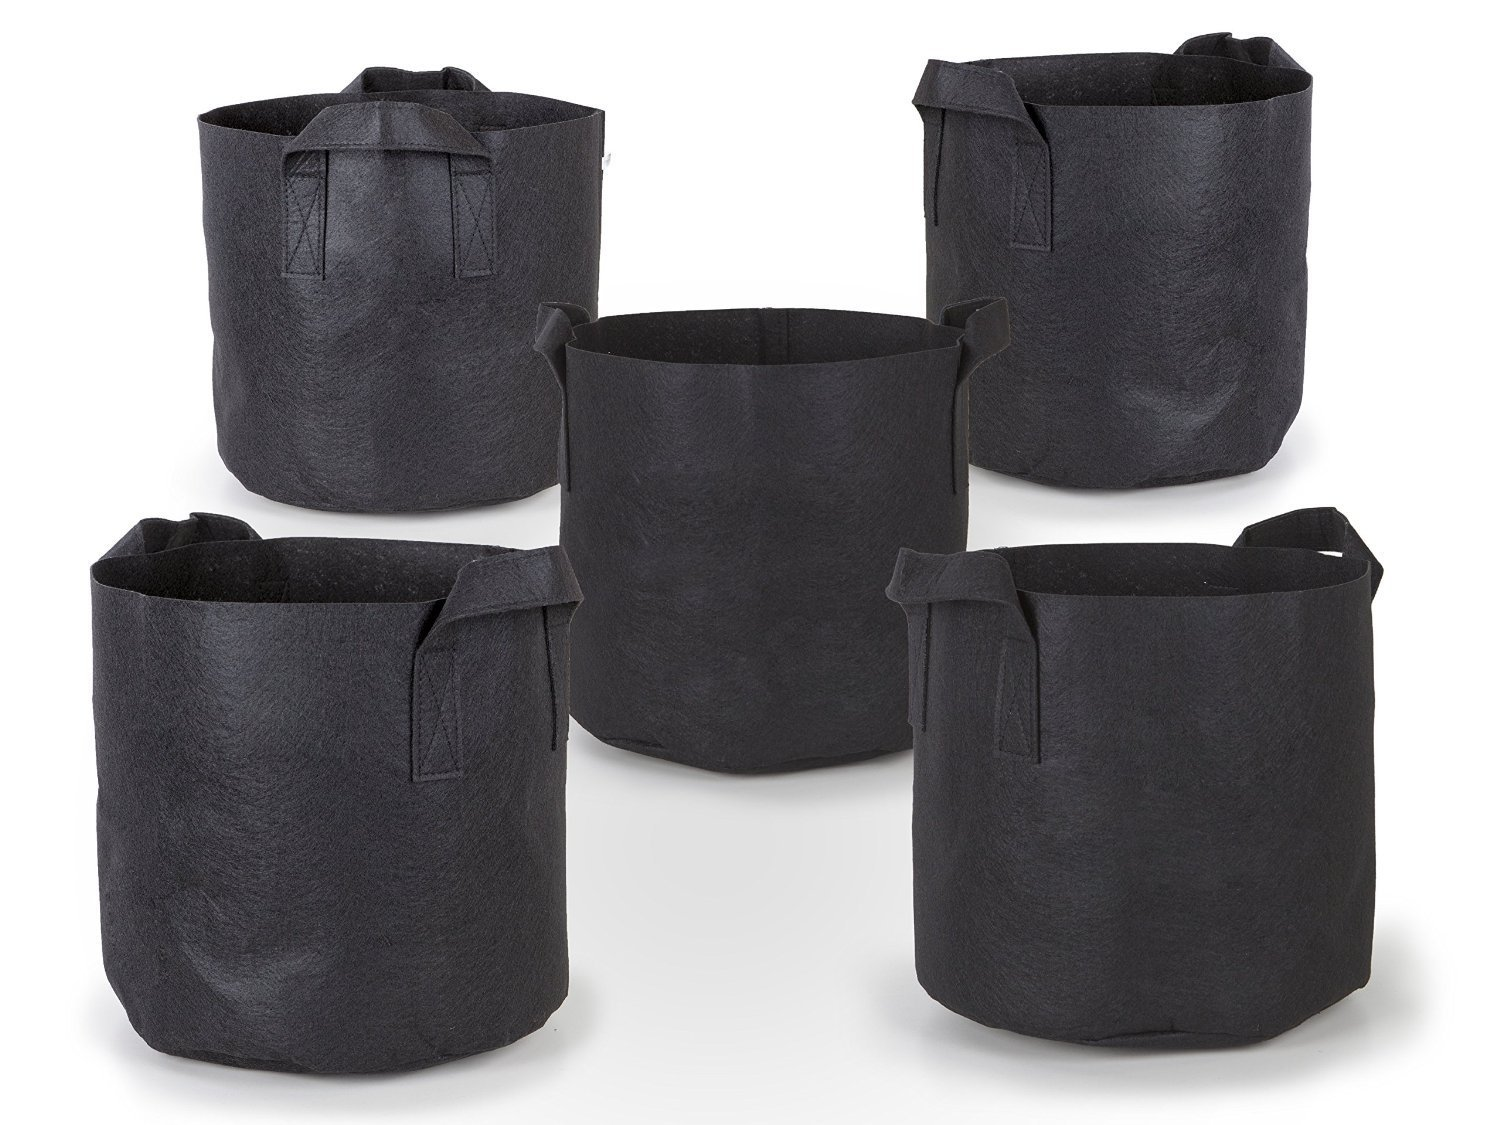 247Garden 5-Pack 5 Gallon Grow Bags /Aeration Fabric Pots w/Handles (Black)